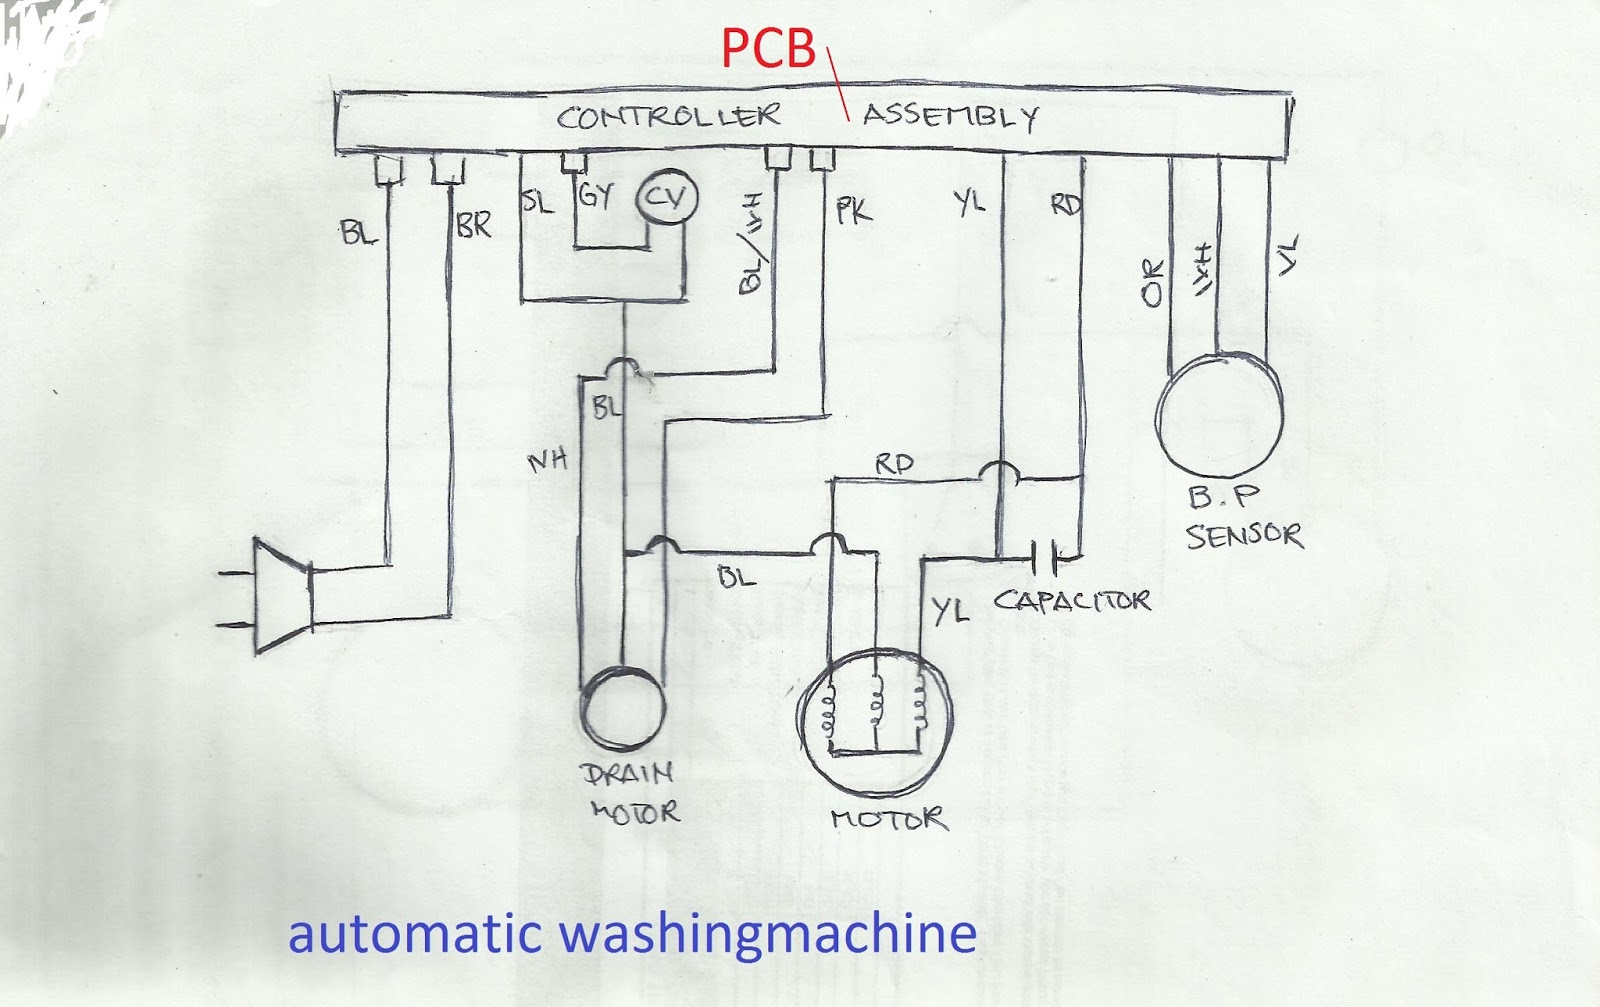 Fridge Wiring Diagram Manual 28 Images Refrigerated Truck Washine Refrigeration And Air Conditioning Repair Of At Cita